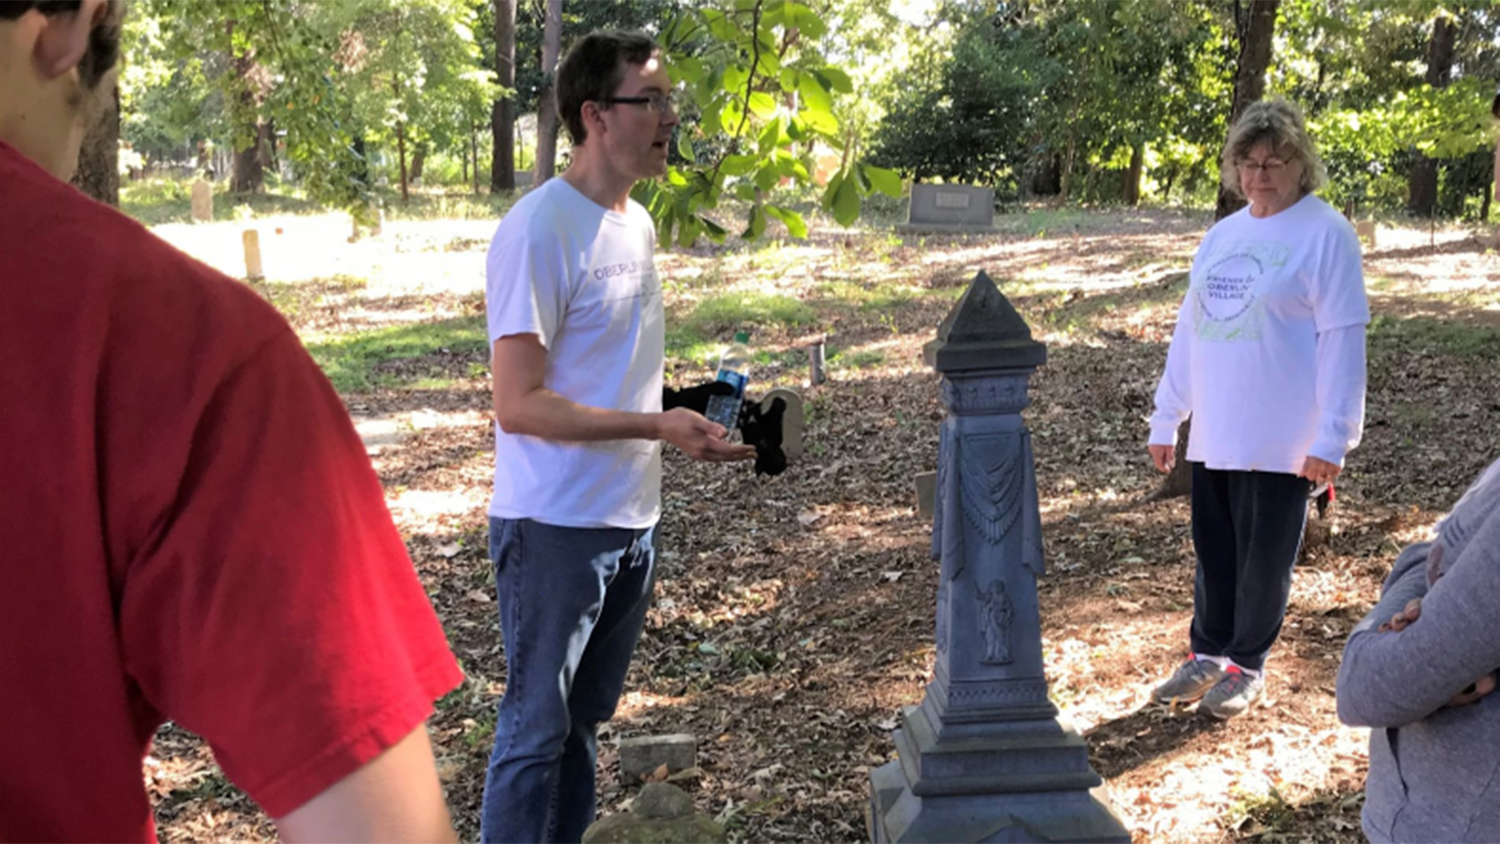 man conducts research in cemetery